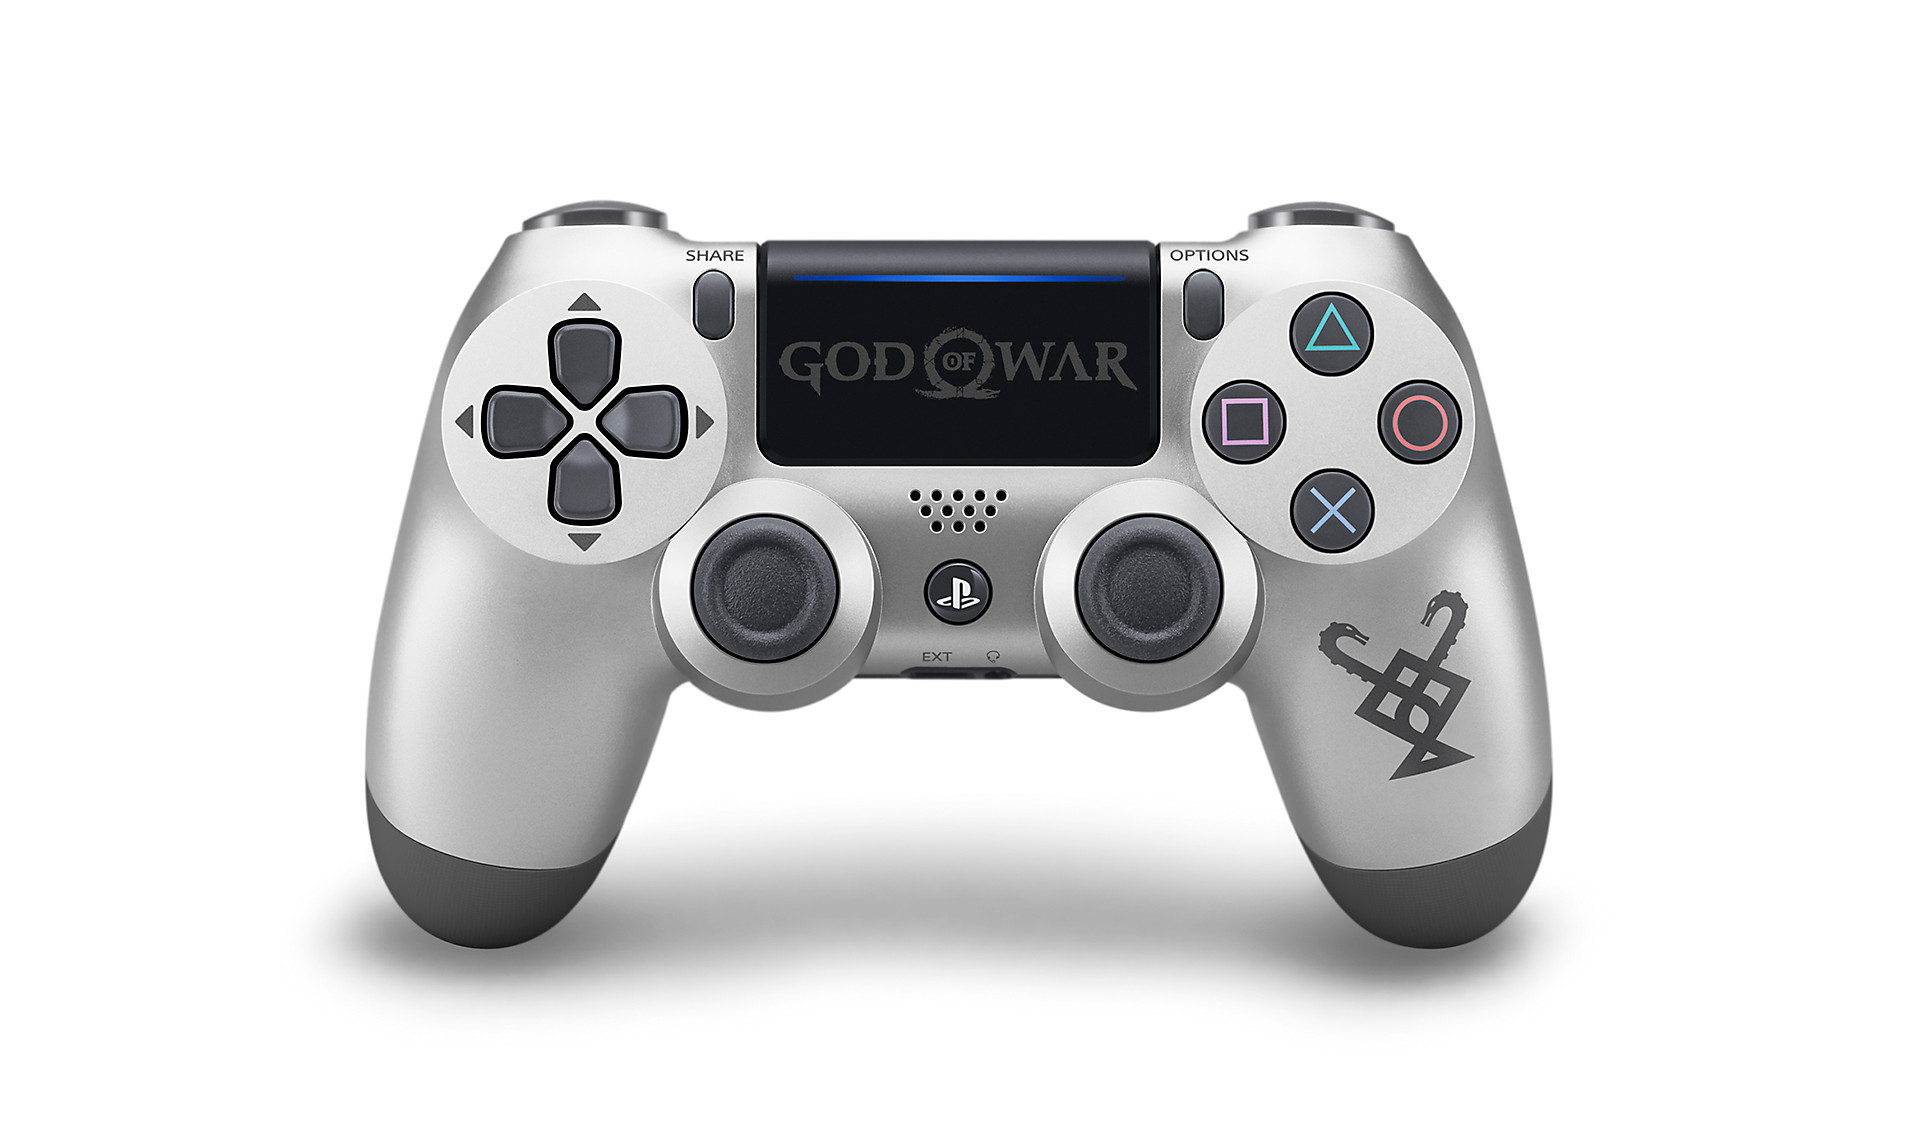 God of War™ Limited Edition DualShock 4 - PlayStation Accessories